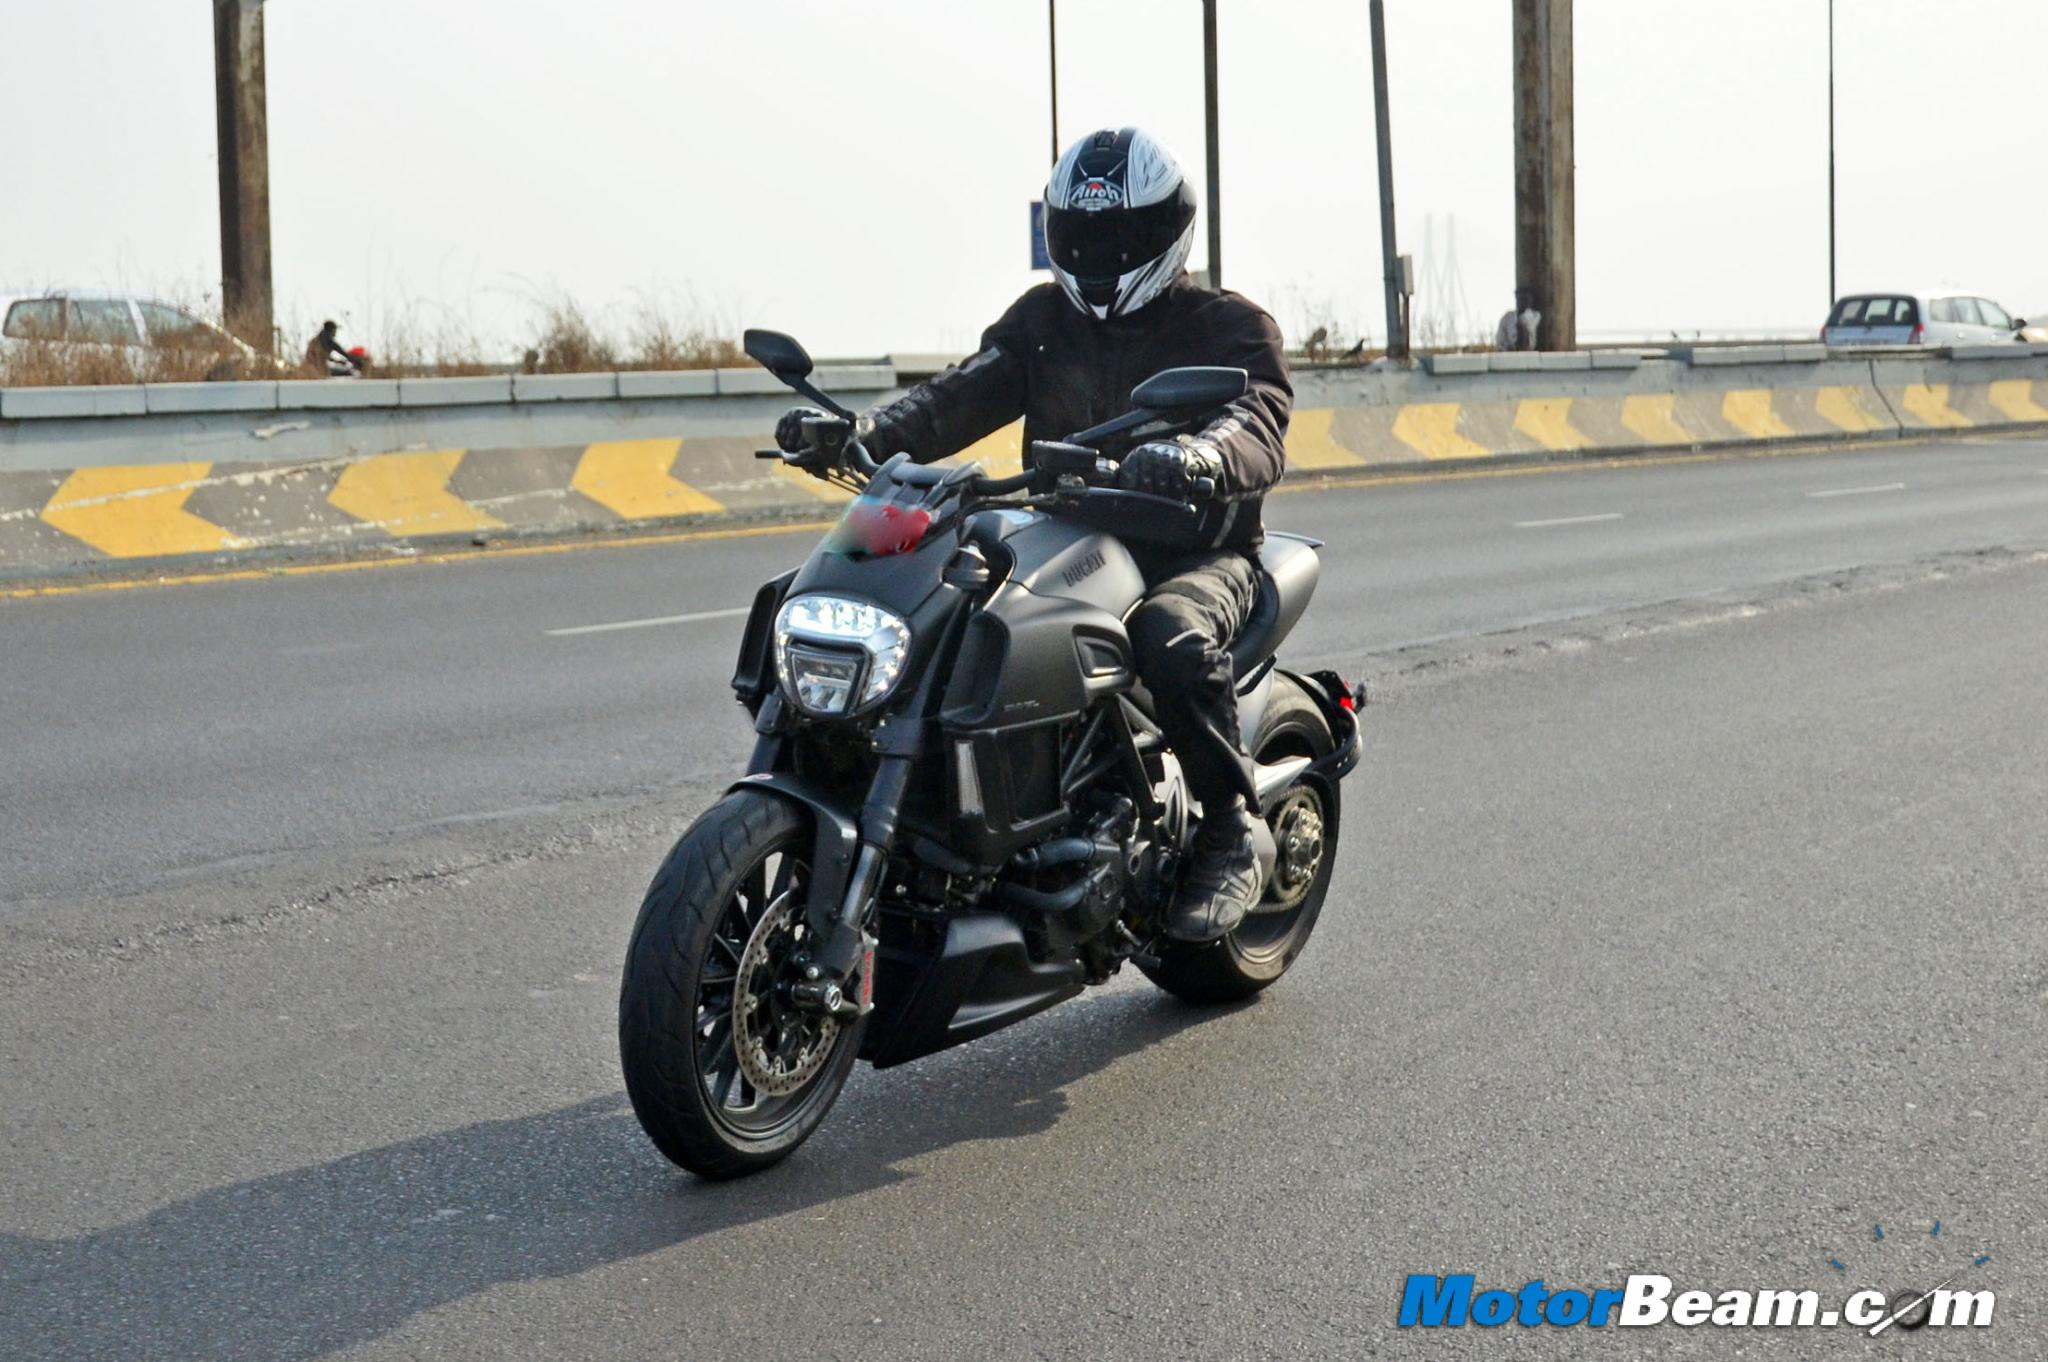 Ducati Launches Operations In India Scrambler Priced At Rs 6 77 Lakhs